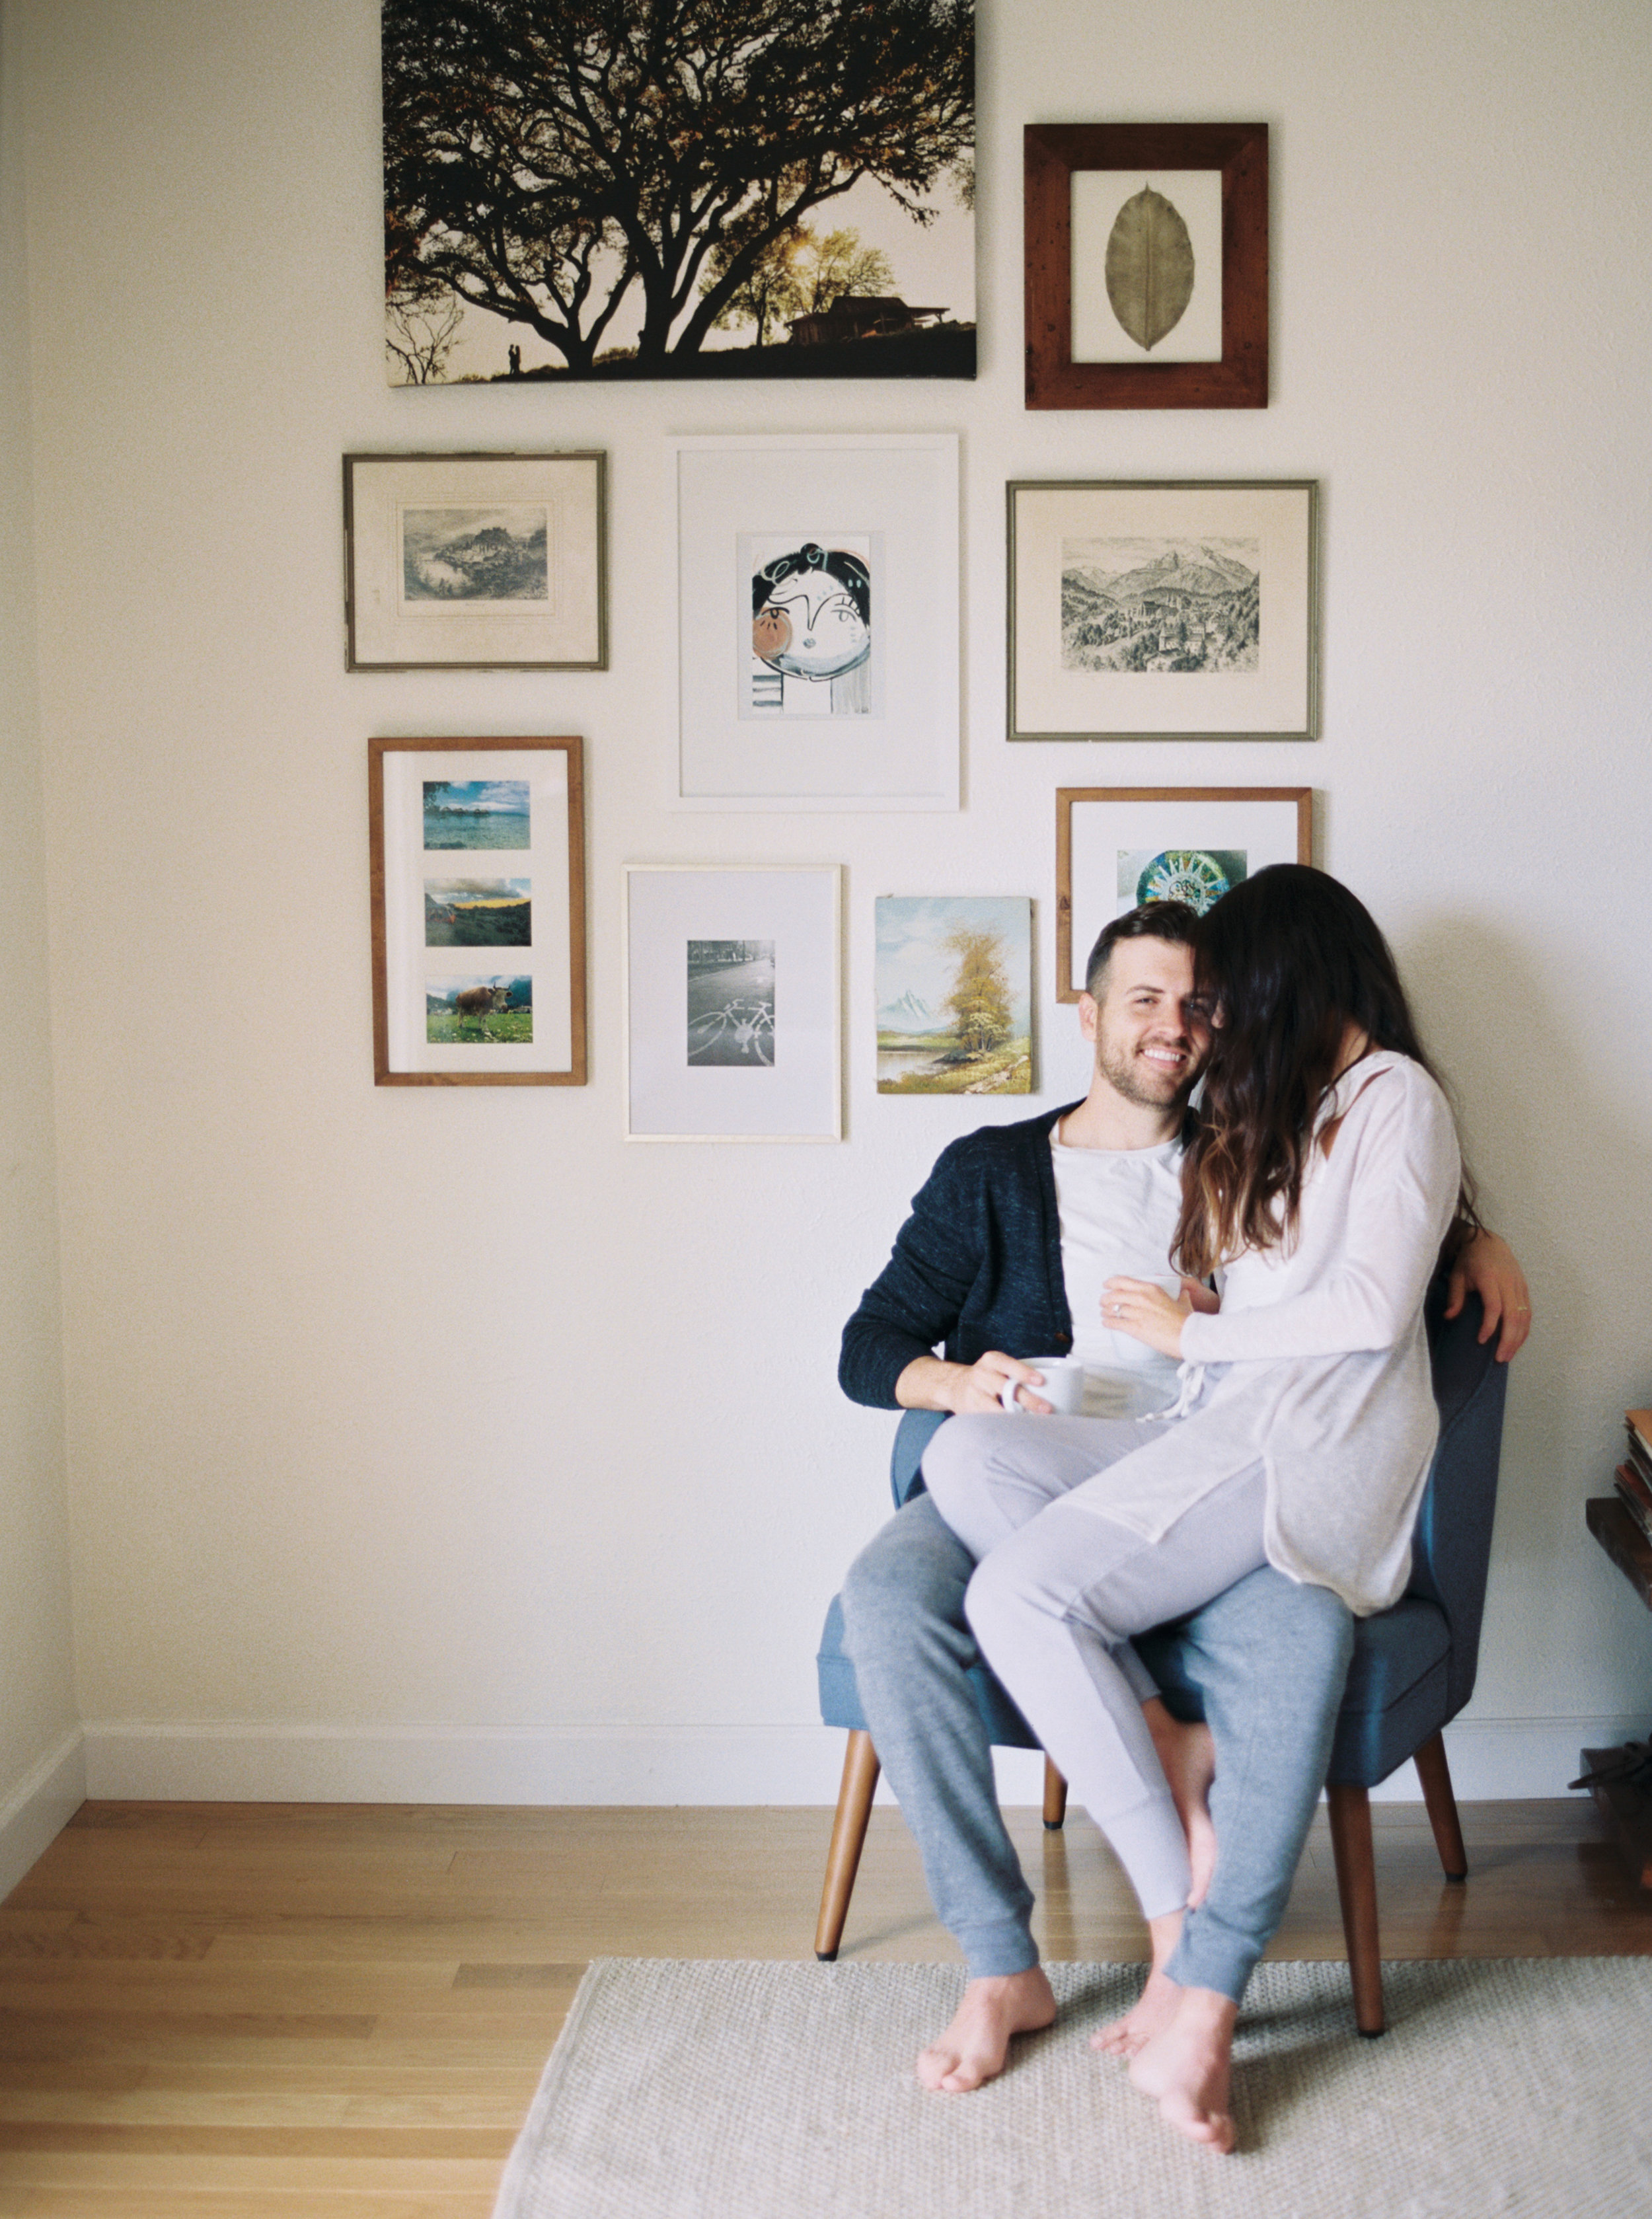 cozy-in-home-austin-family-session-jenna-mcelroy-15.jpg